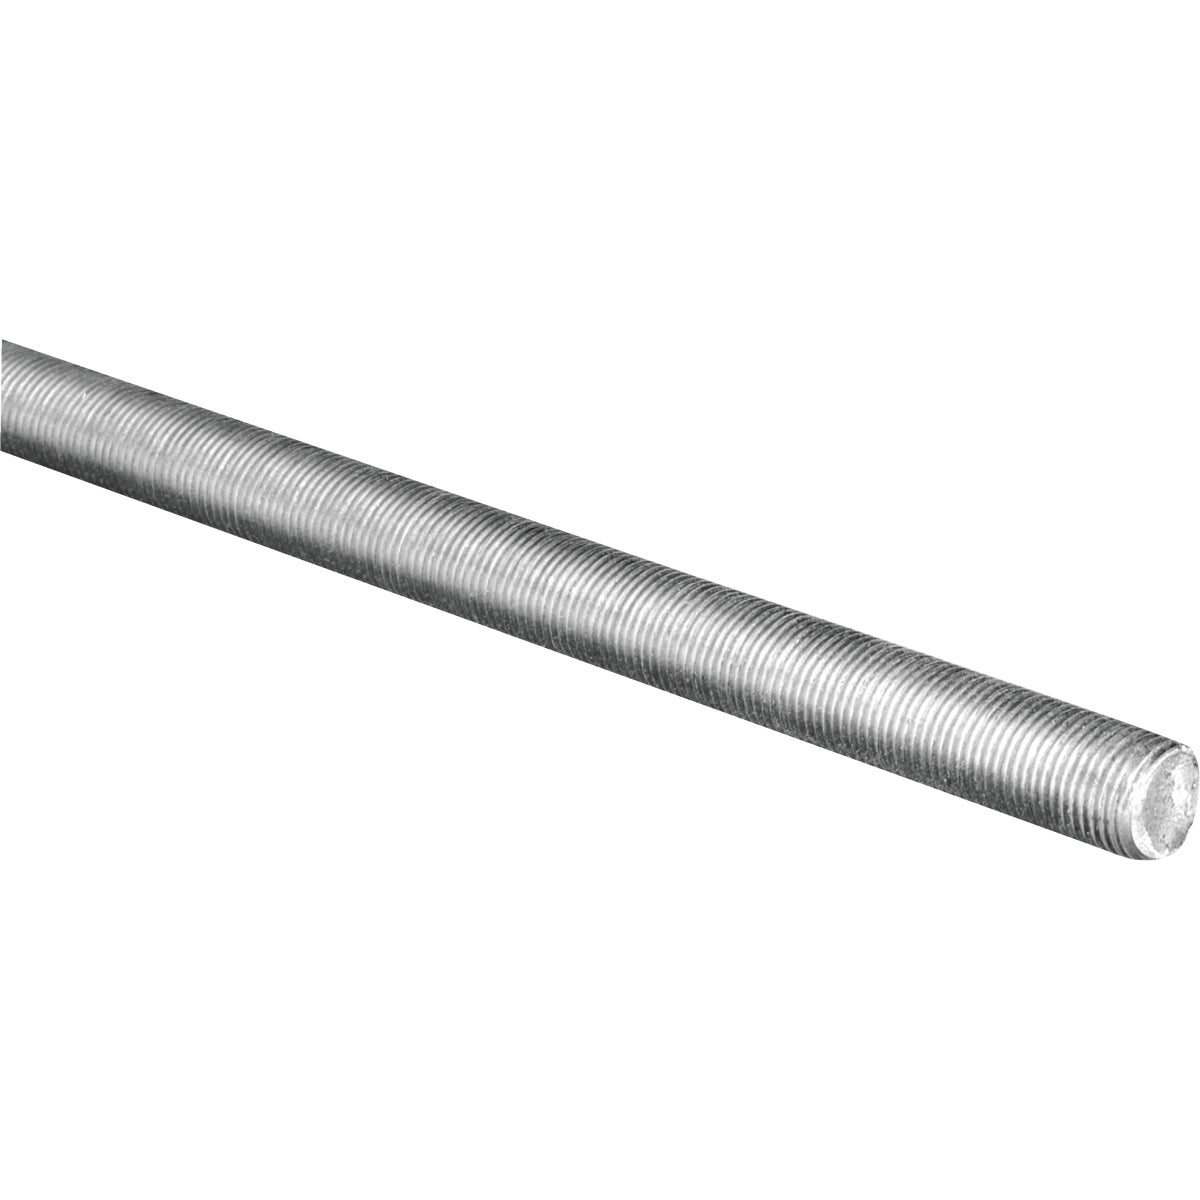 1/4-28X3' THREADED ROD - N218271 by National Mfg Co